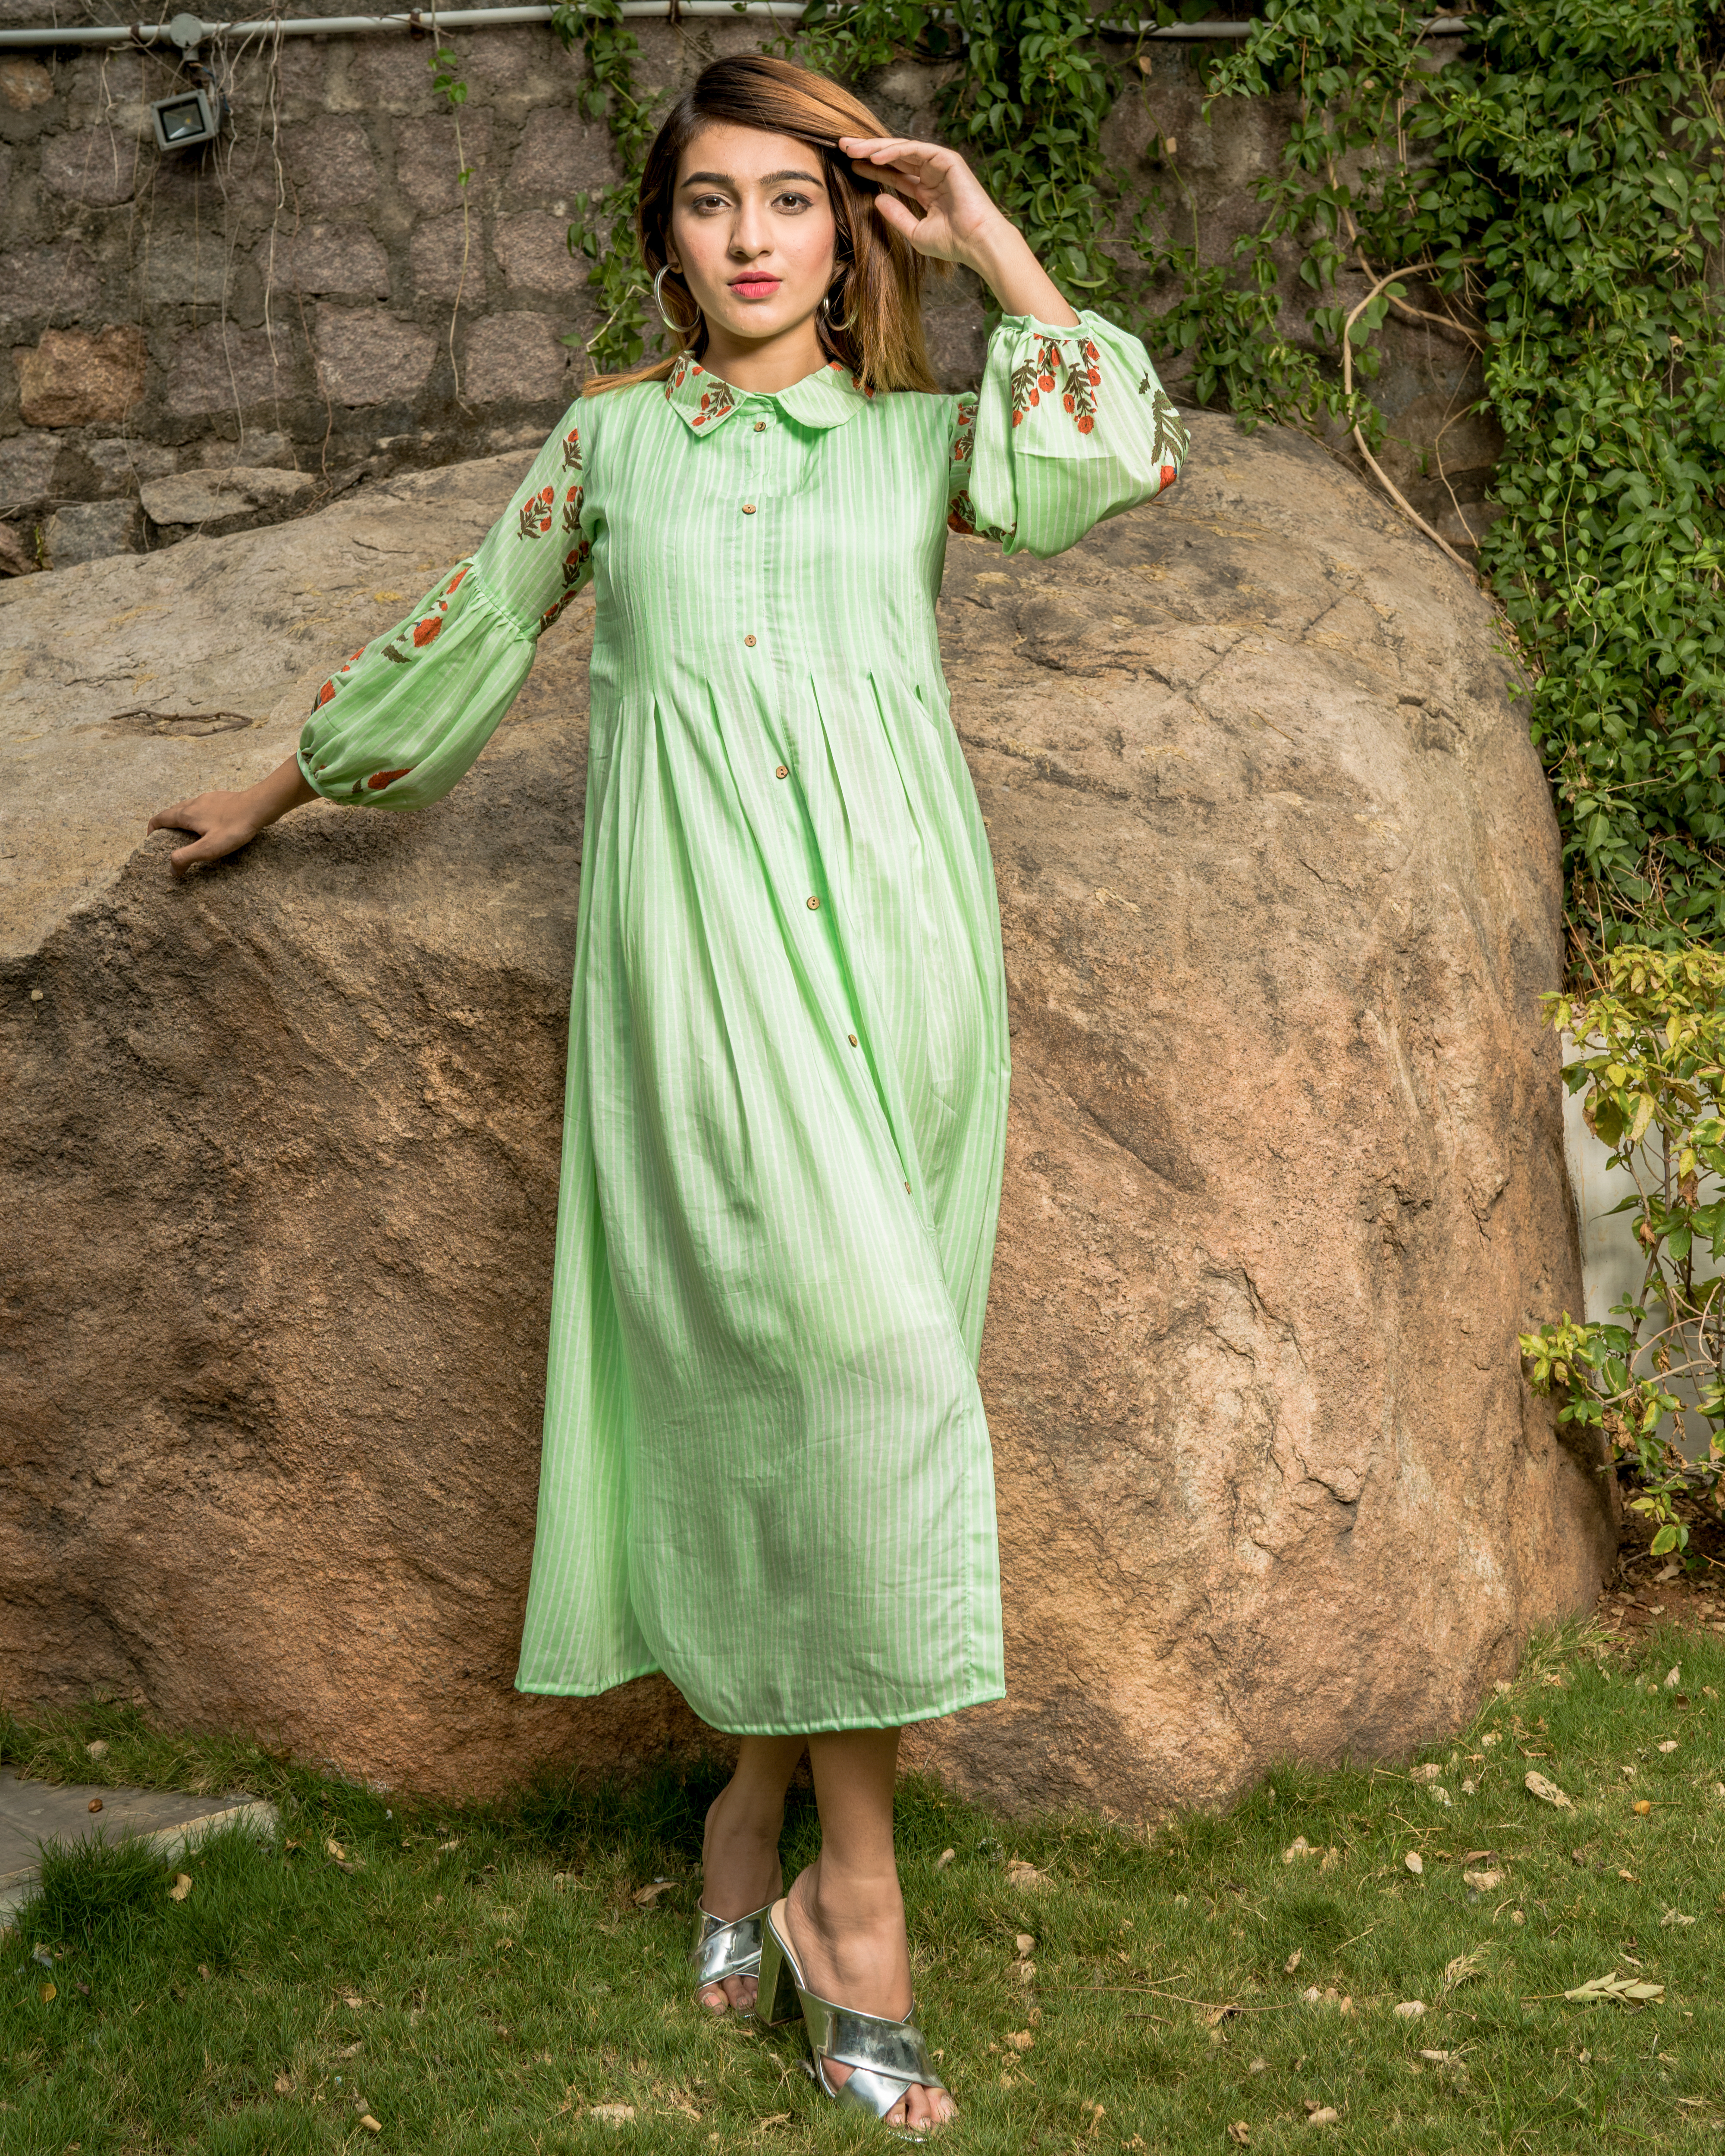 Self Striped Mint Green Box Pleated Dress with Printed Balloon Sleeves.